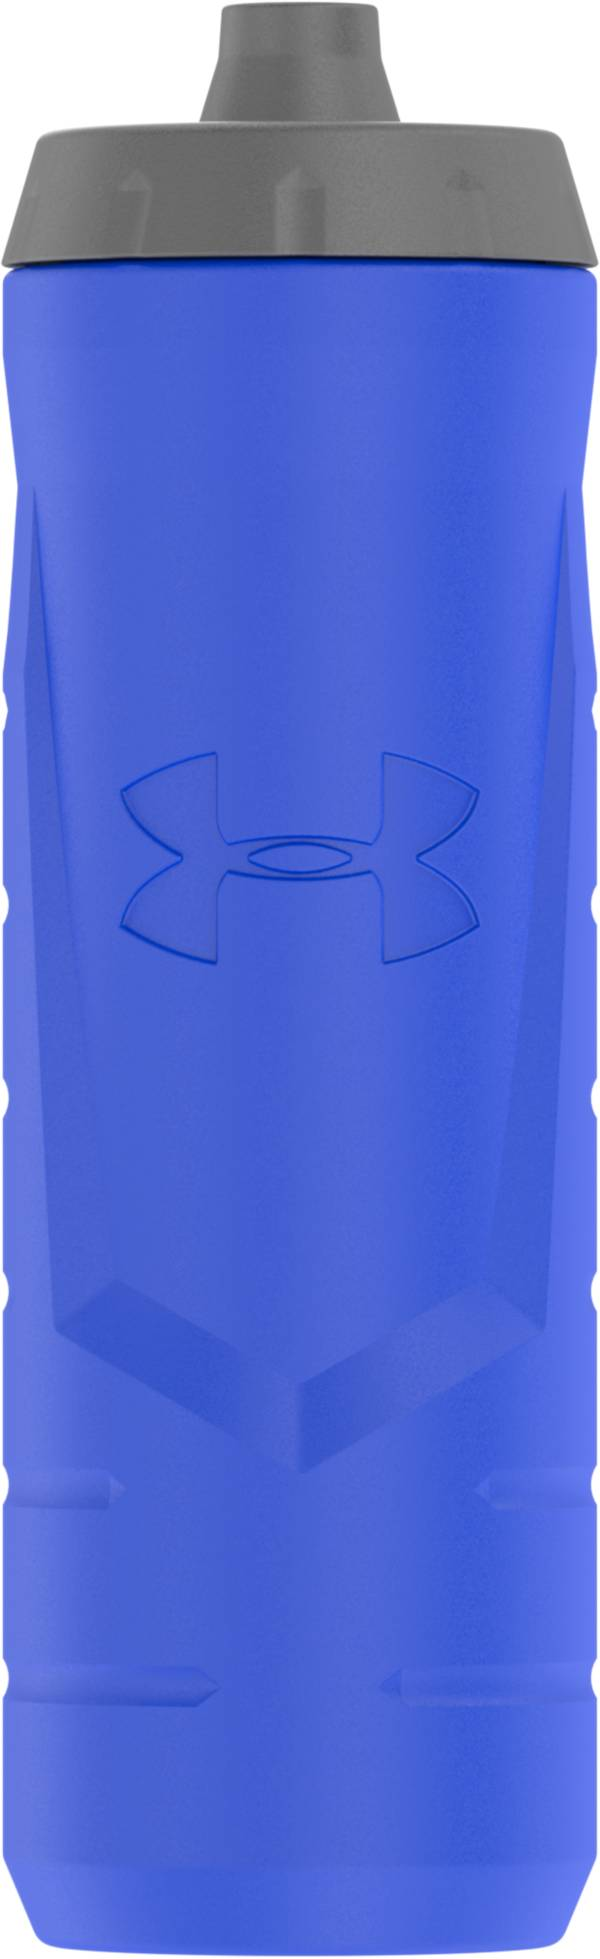 Under Armour Sideline Squeezable 32 oz. Bottle product image